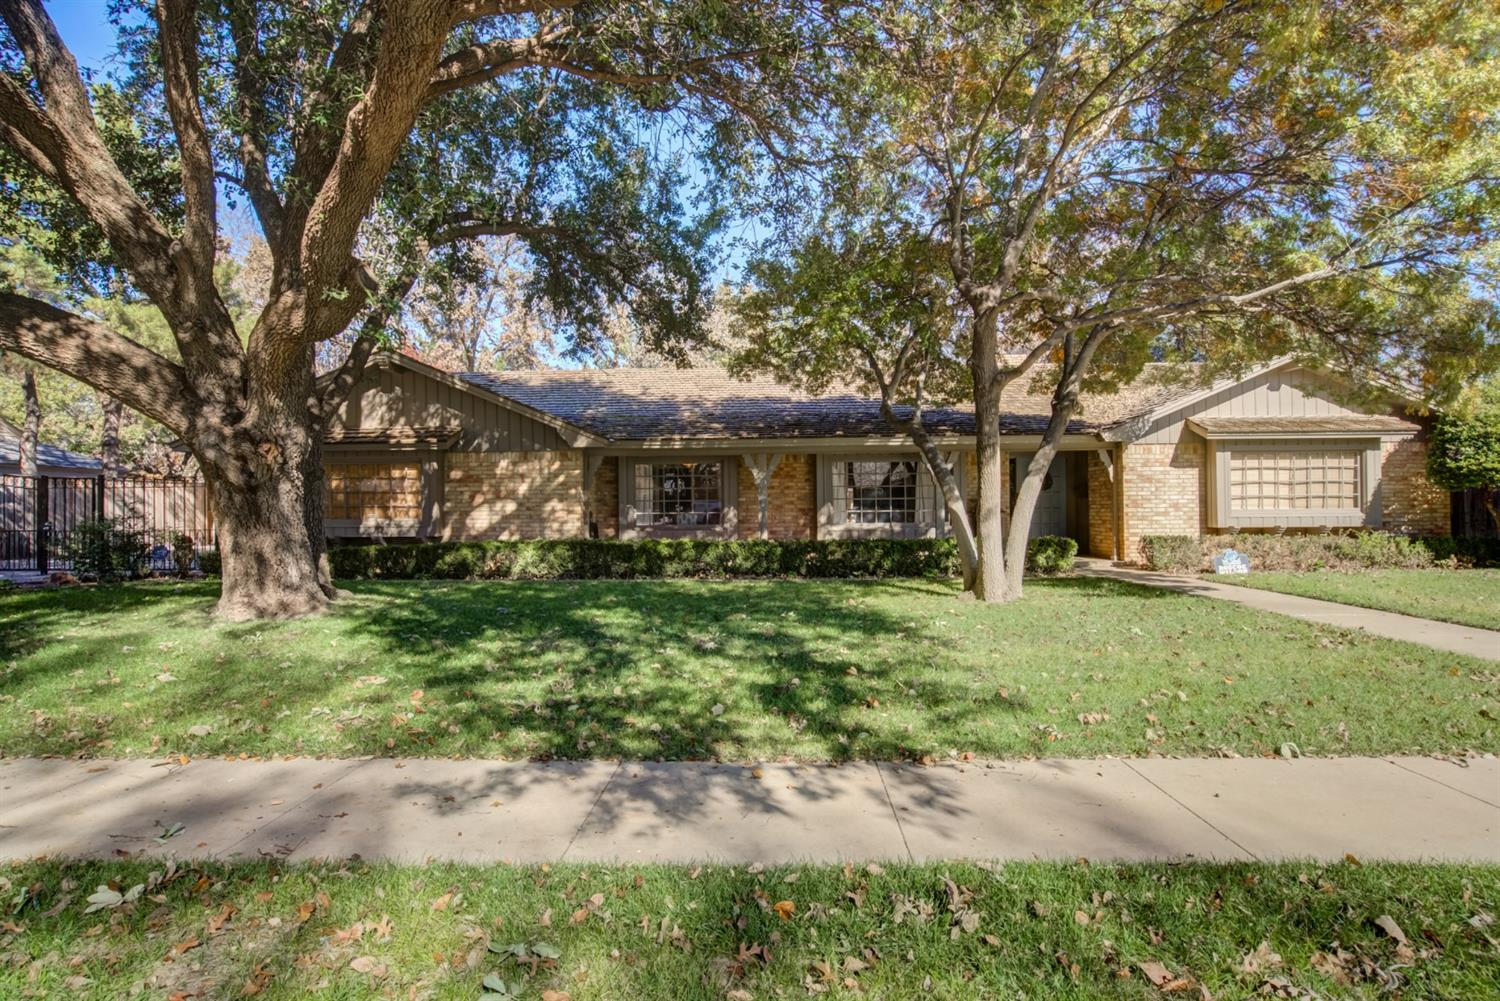 4406 10th Street, Lubbock in Lubbock County, TX 79416 Home for Sale